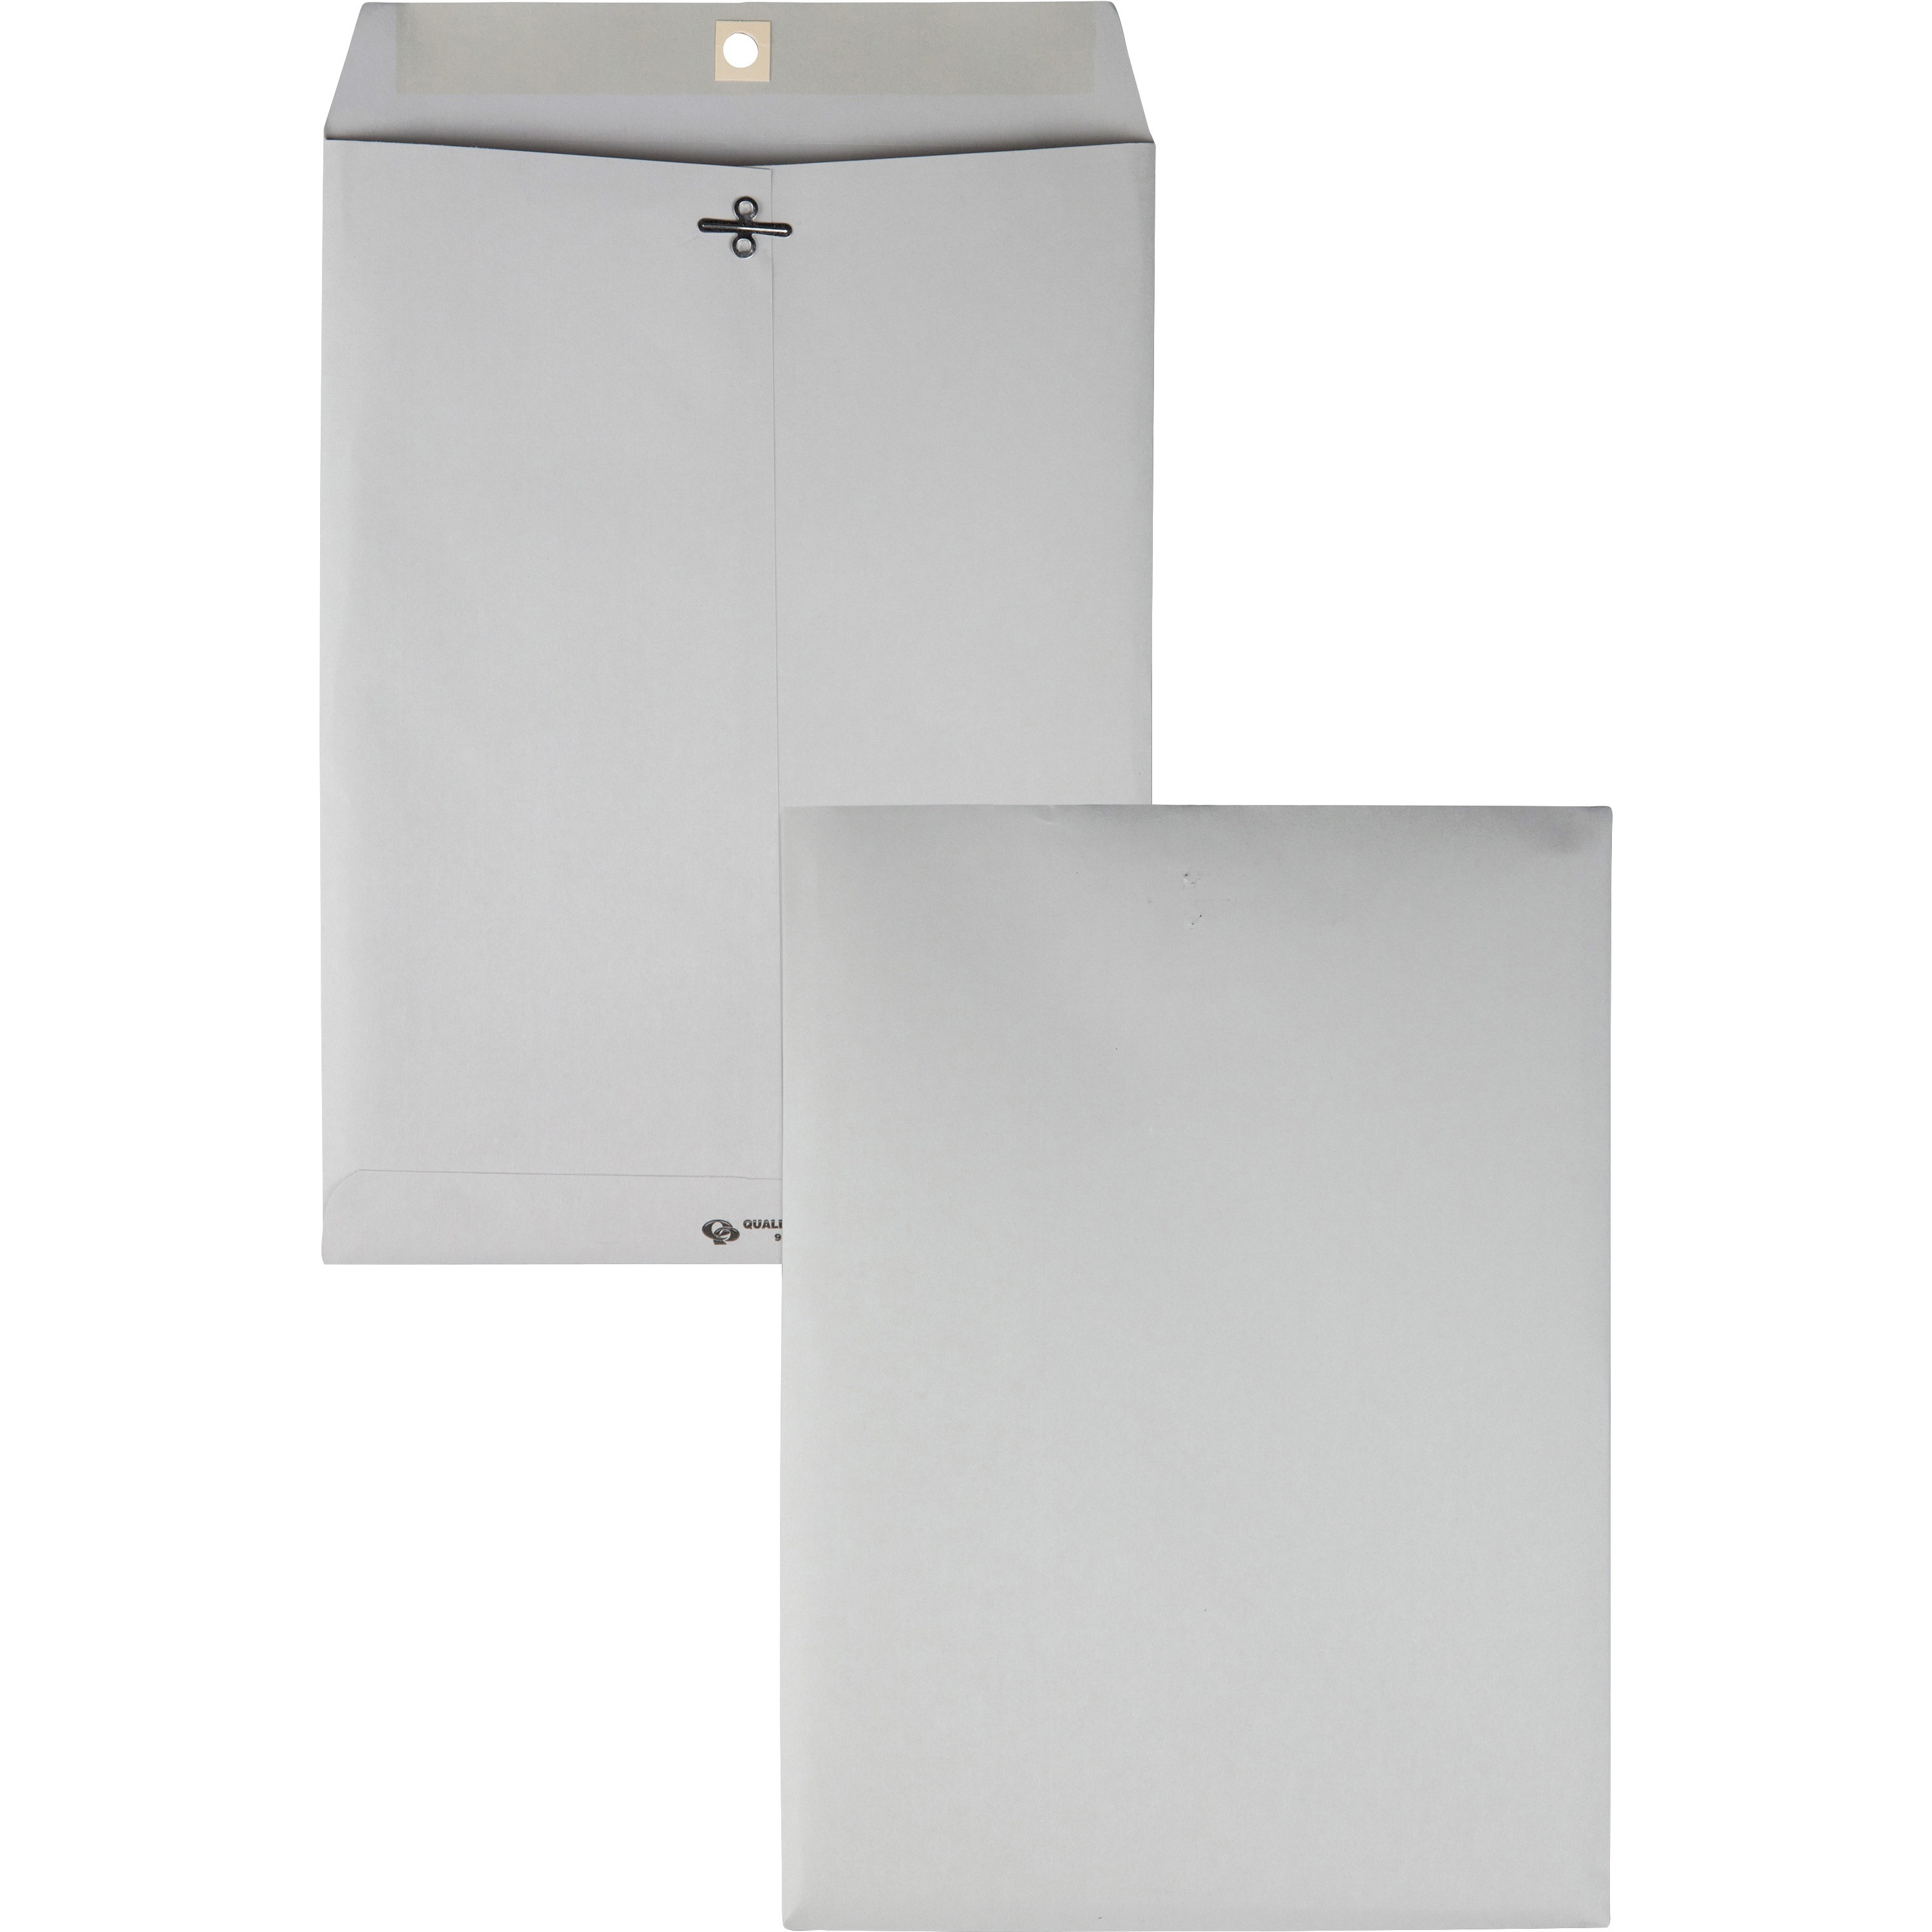 Clasp Envelope, 9 x 12, 28lb, Executive Gray, 100/Box